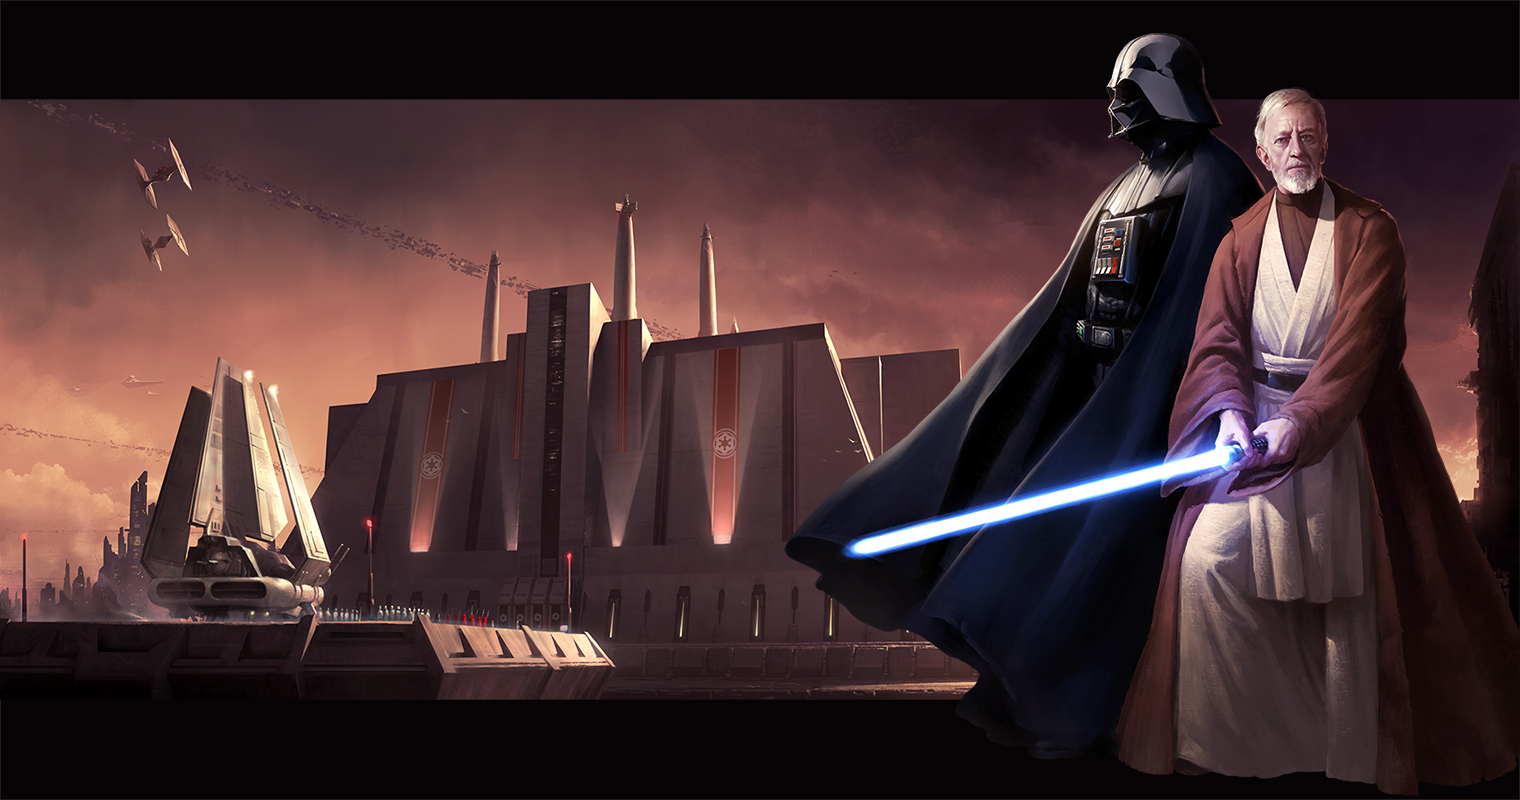 star_wars__force_and_destiny_by_wraithdt-d8hg7ct.jpg